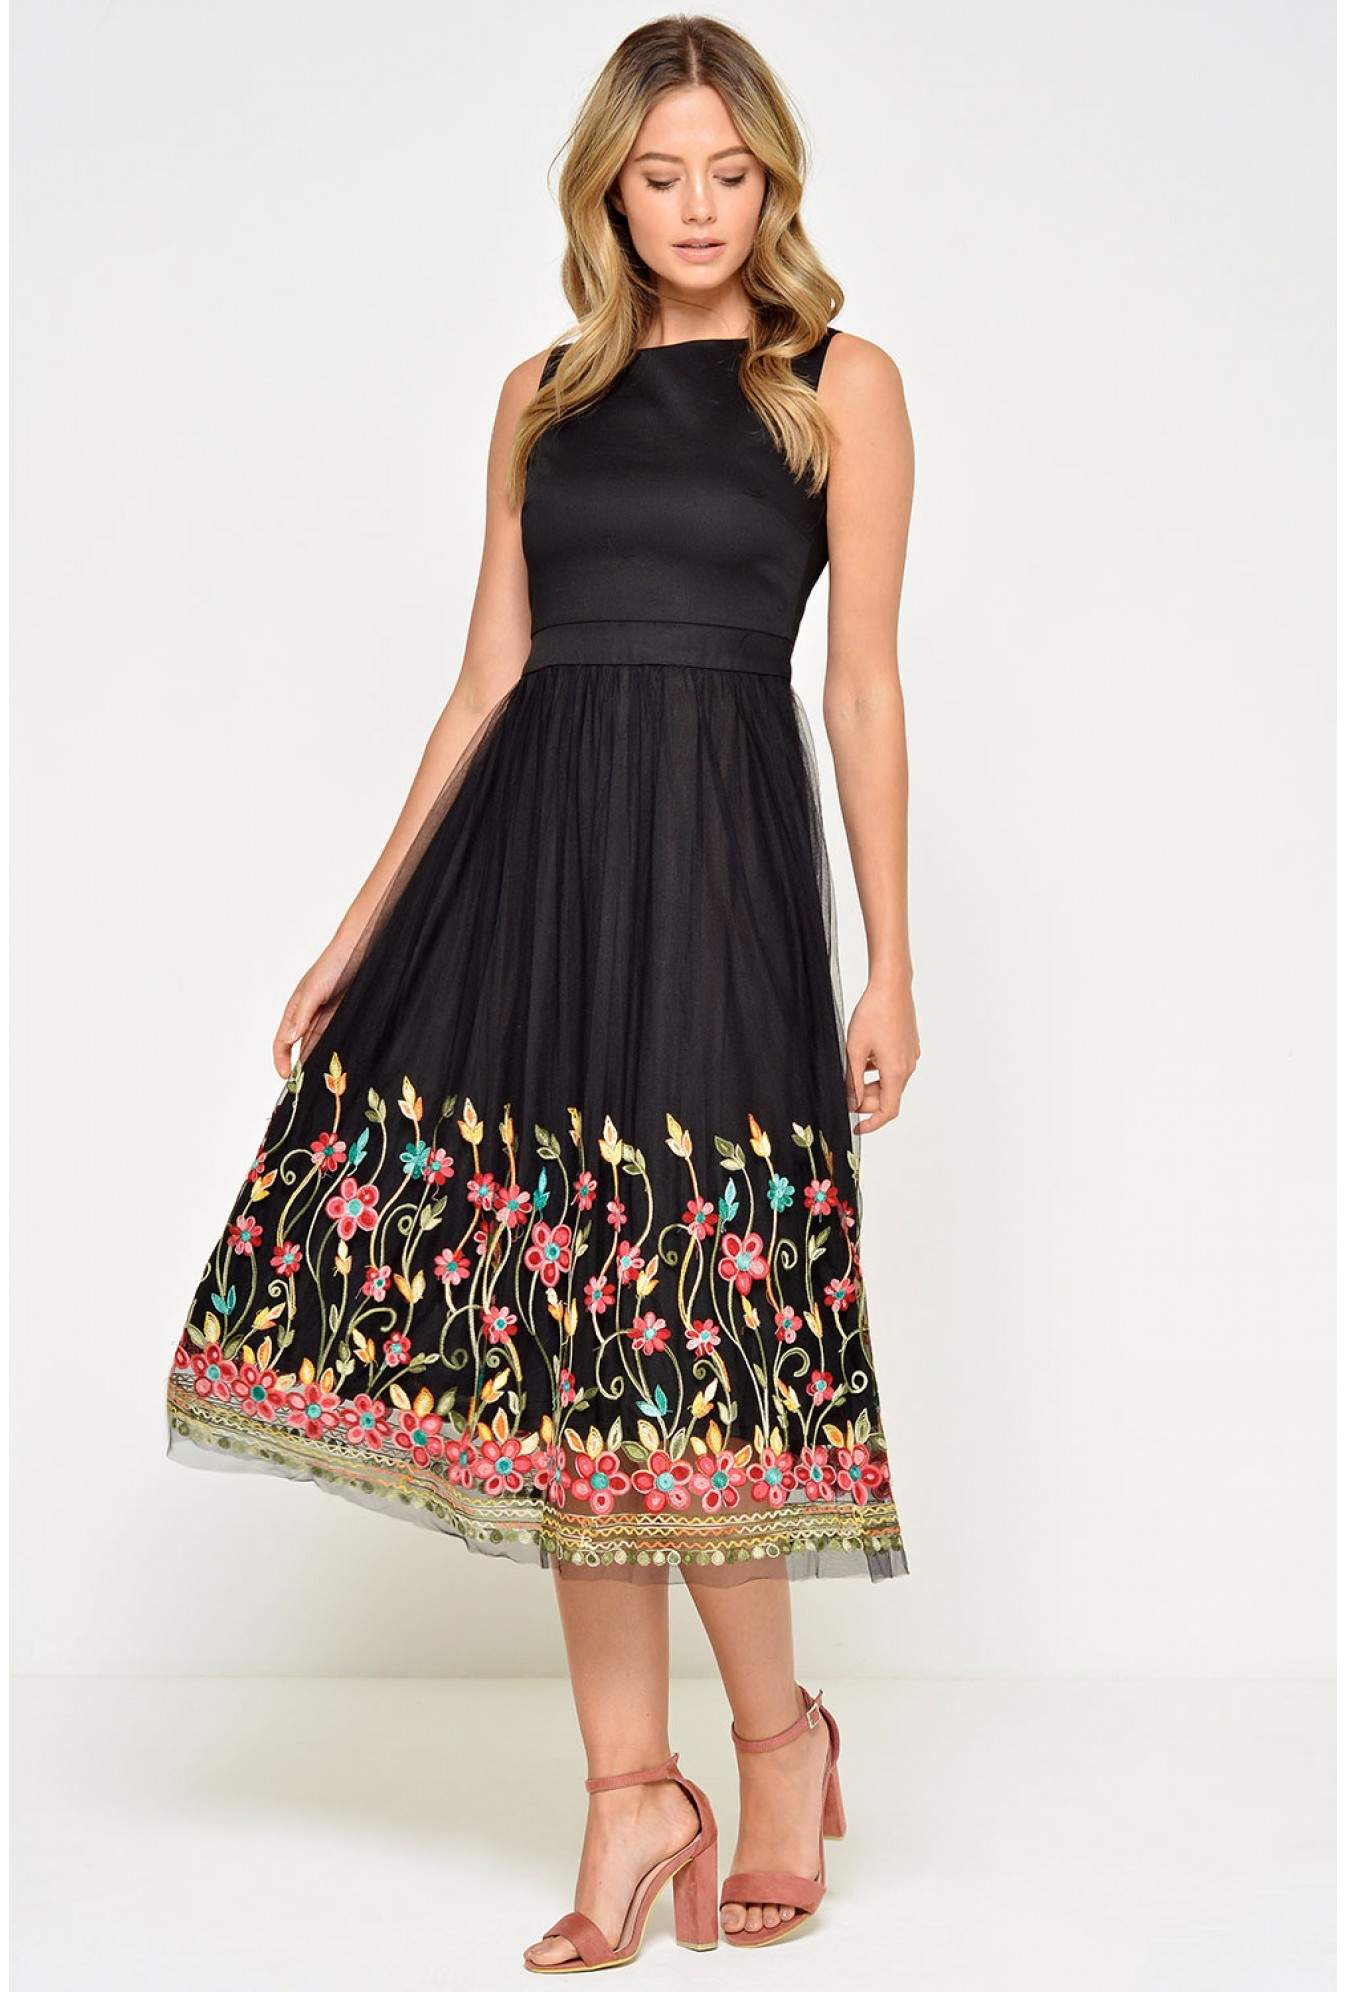 025e430ae088 Stella Isabelle Floral Embroidered Dress in Black | iCLOTHING